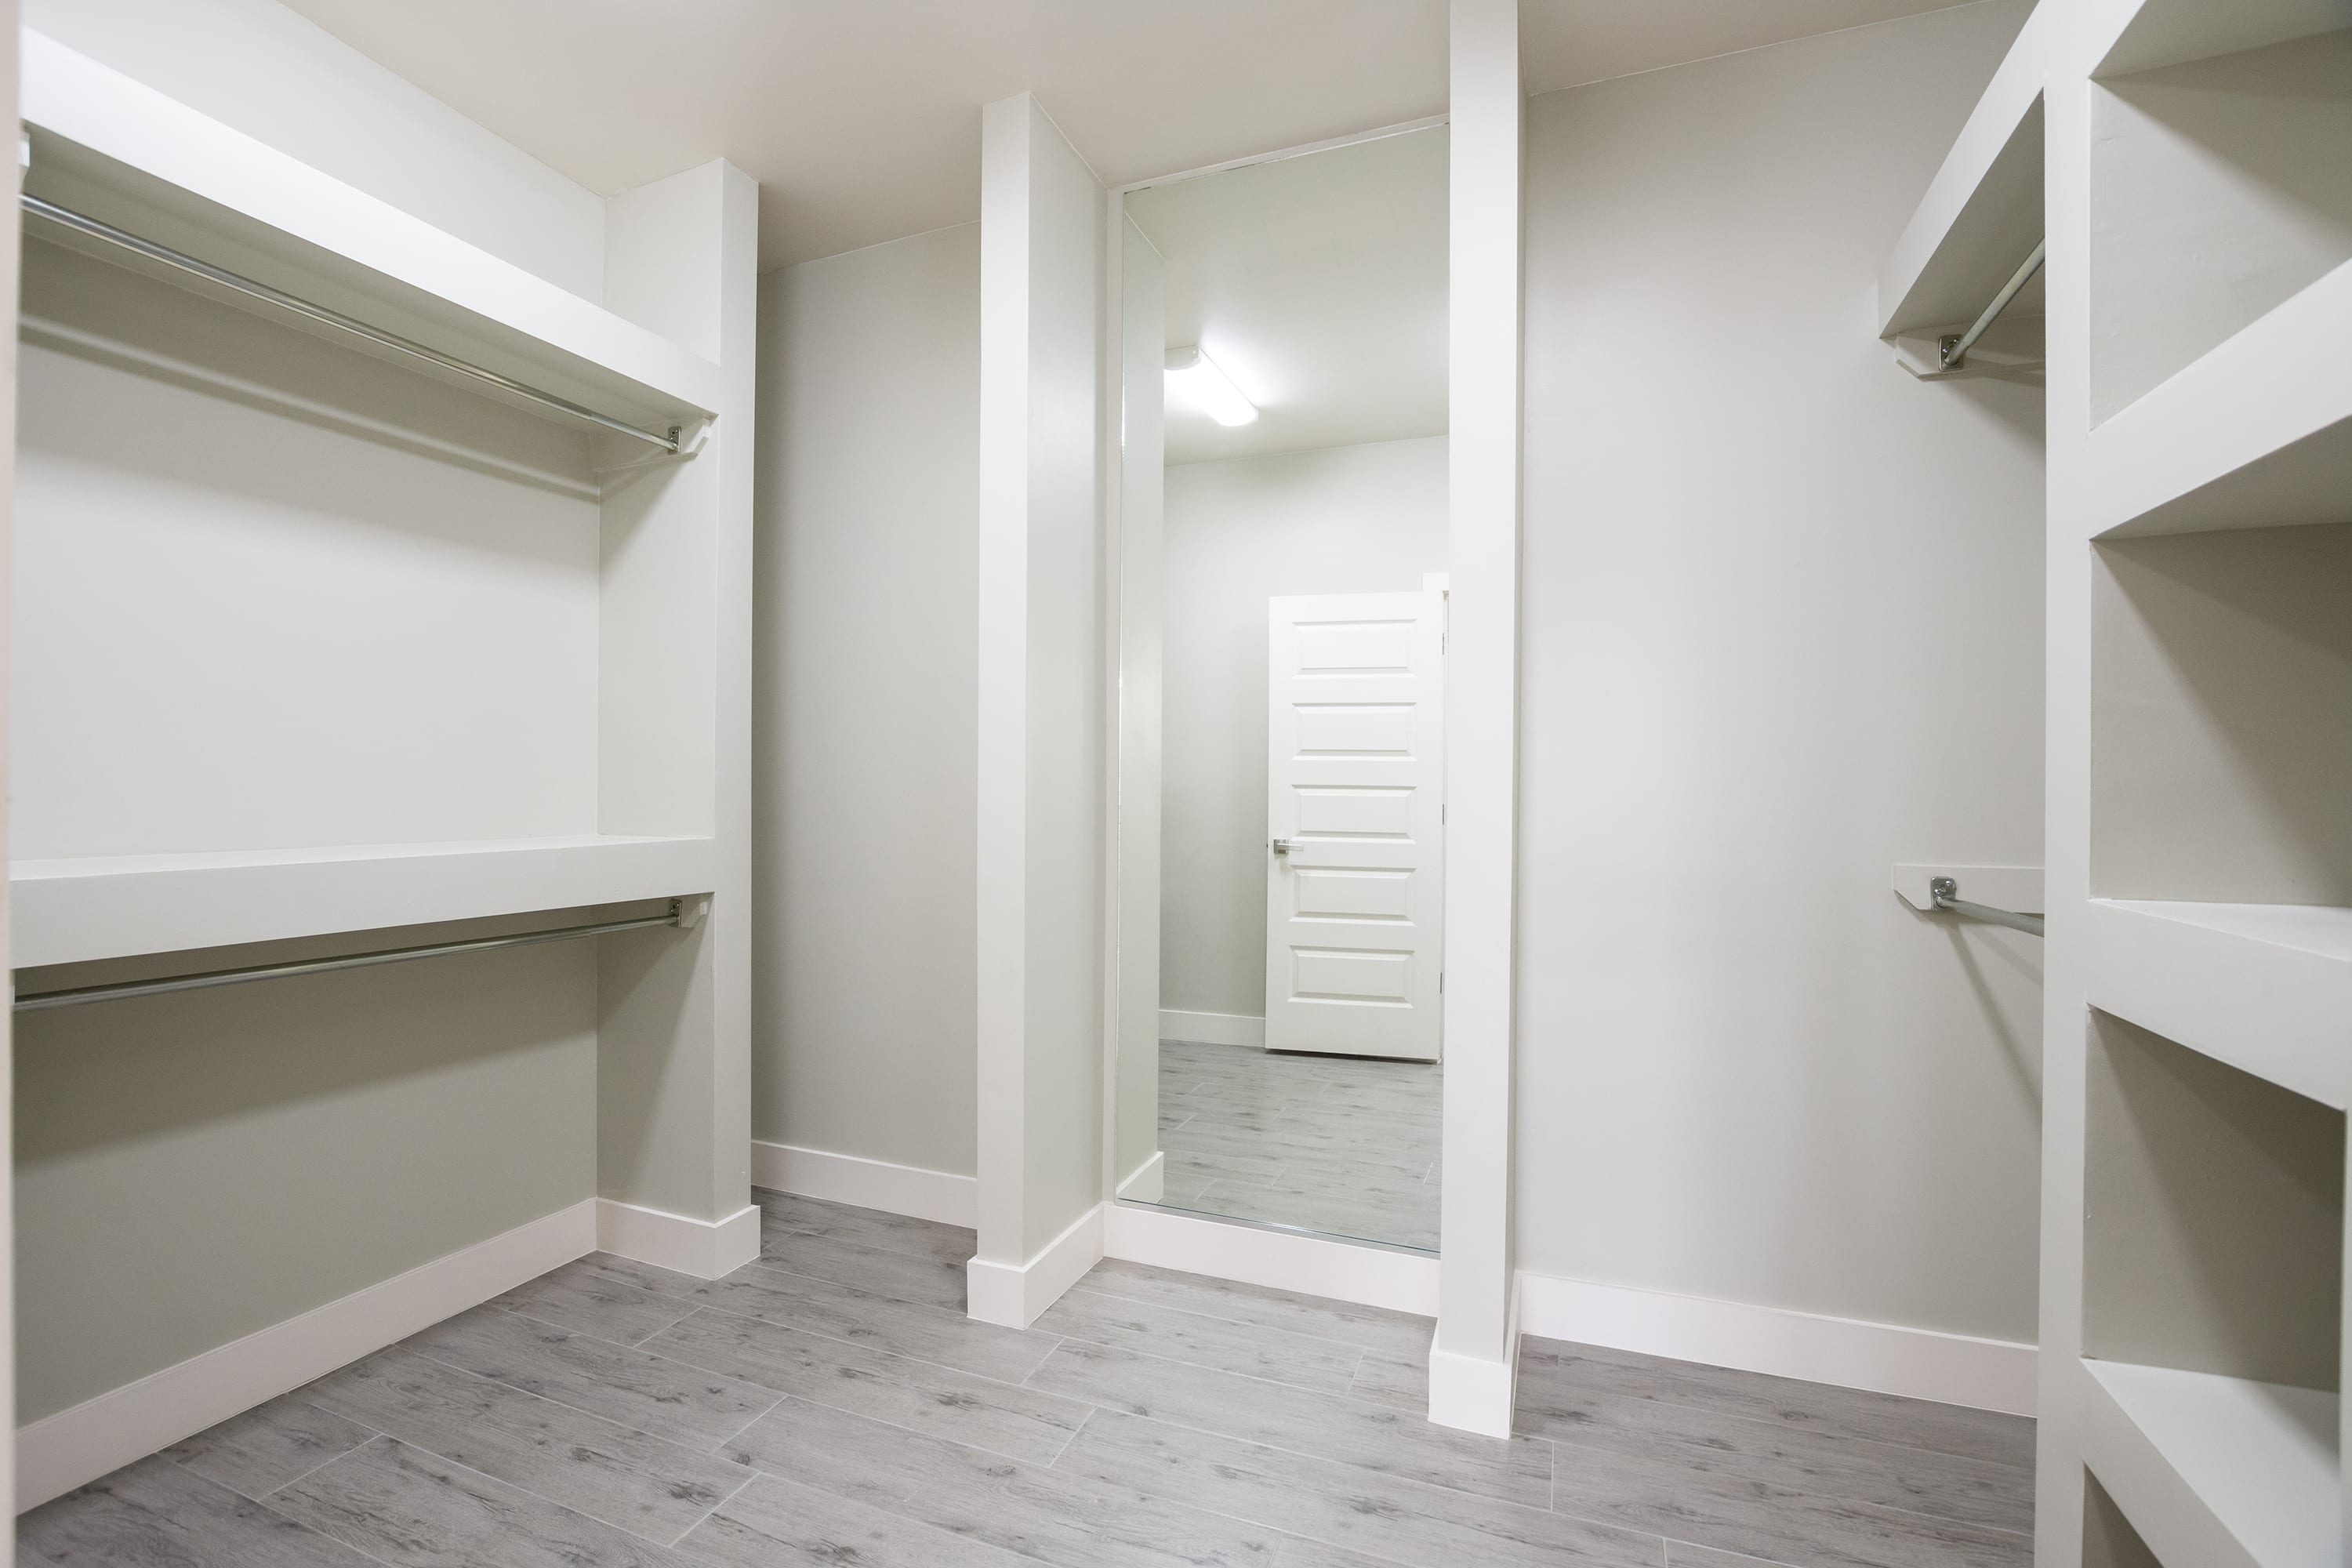 Interior shot of master bedroom walk-in closet in 2884 Maddox contemporary home